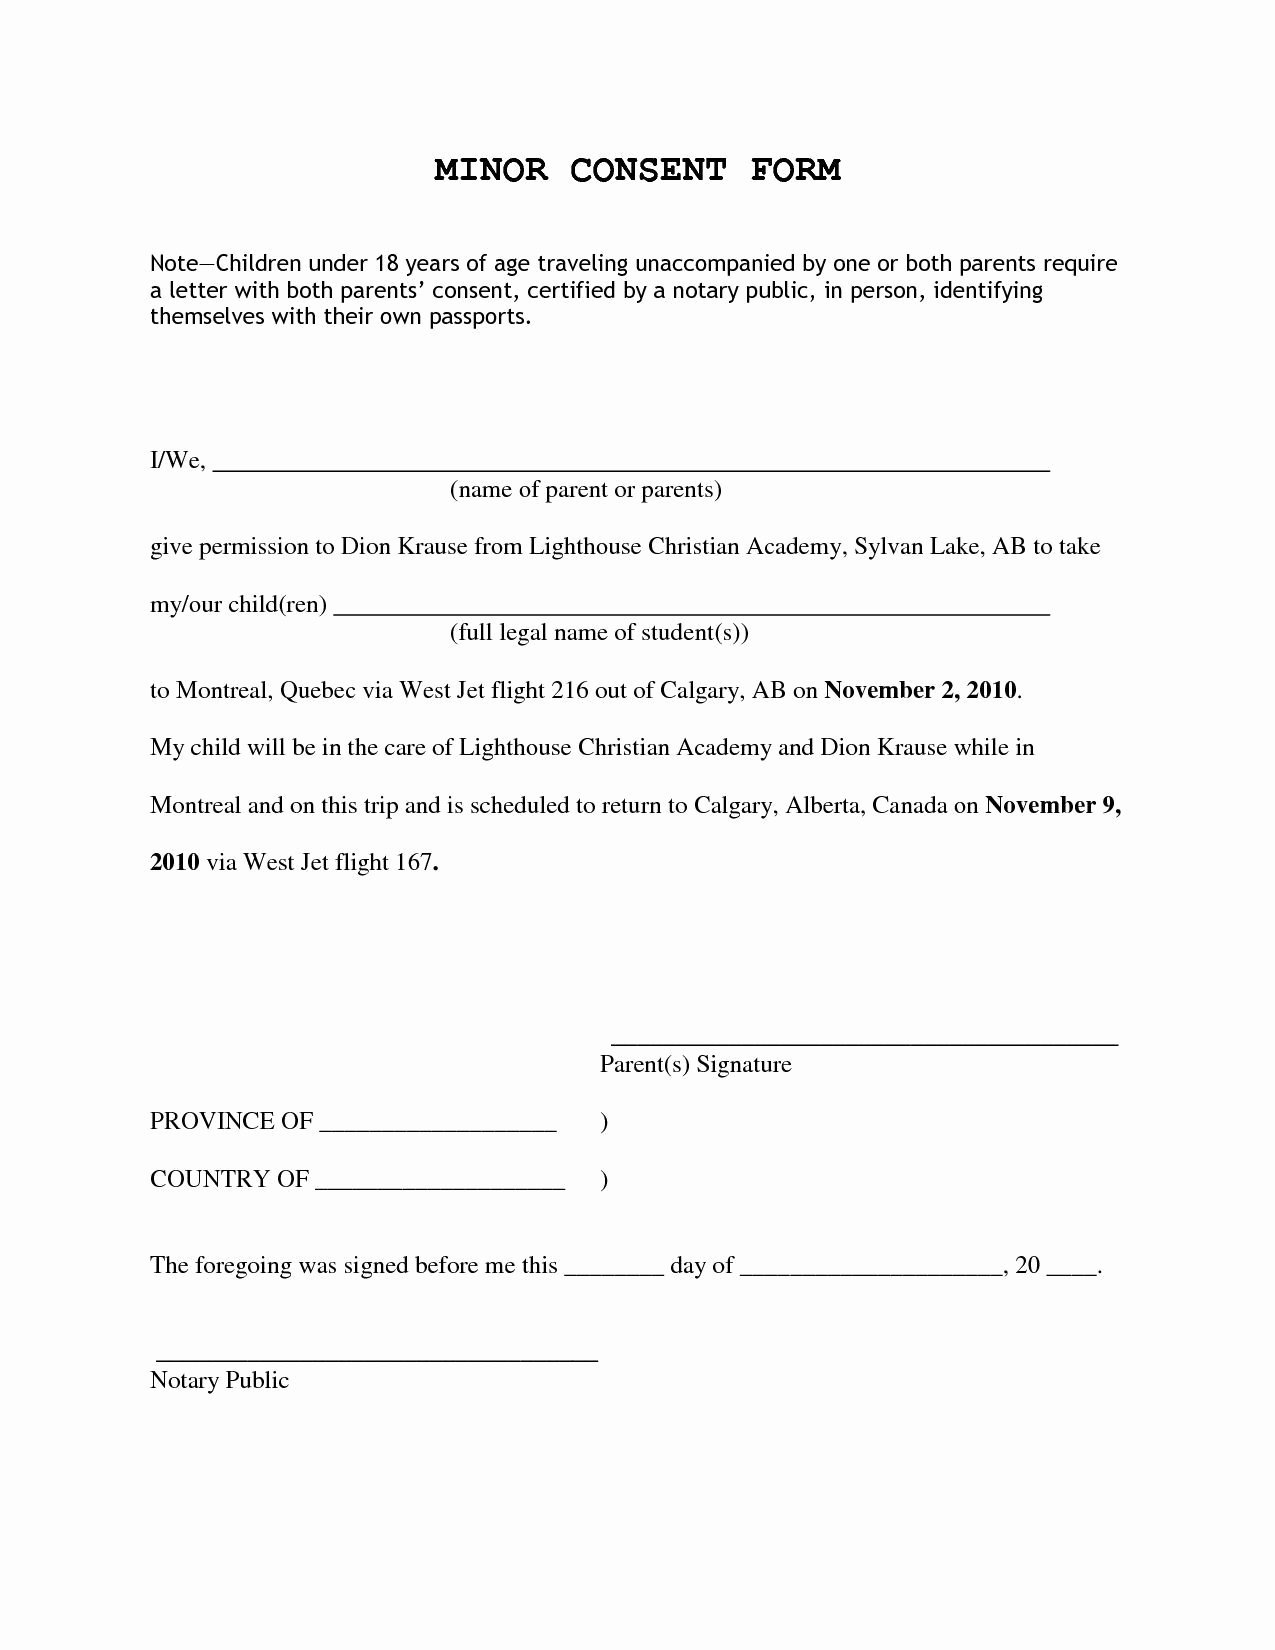 Child Travel Consent form Template Luxury Consent Permission Inside Letter for Children Travelling